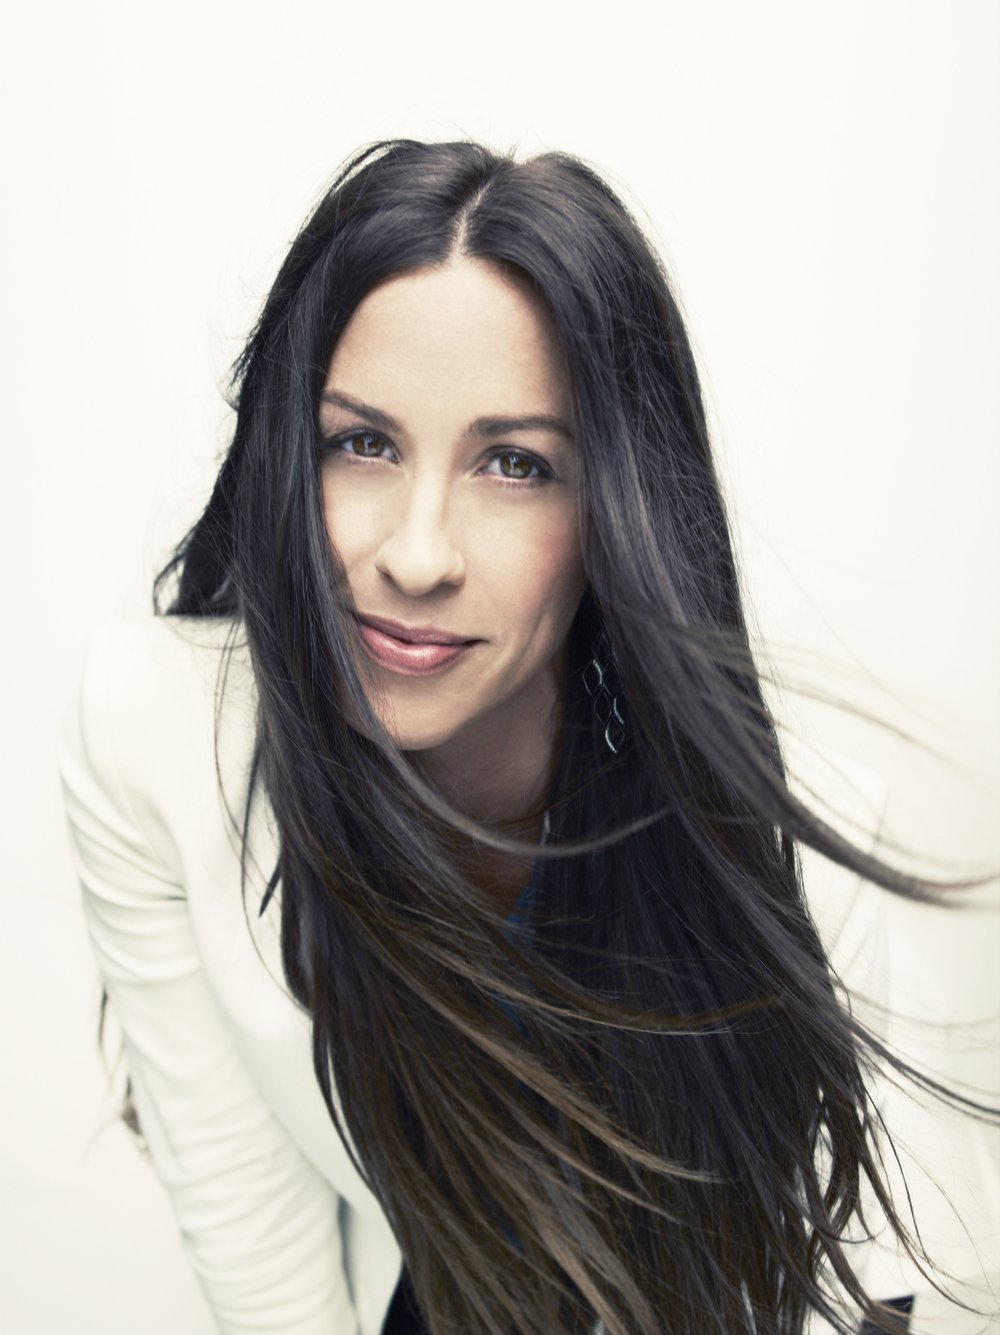 Alanis Morisette photo courtesy of Williams & Hirakawa